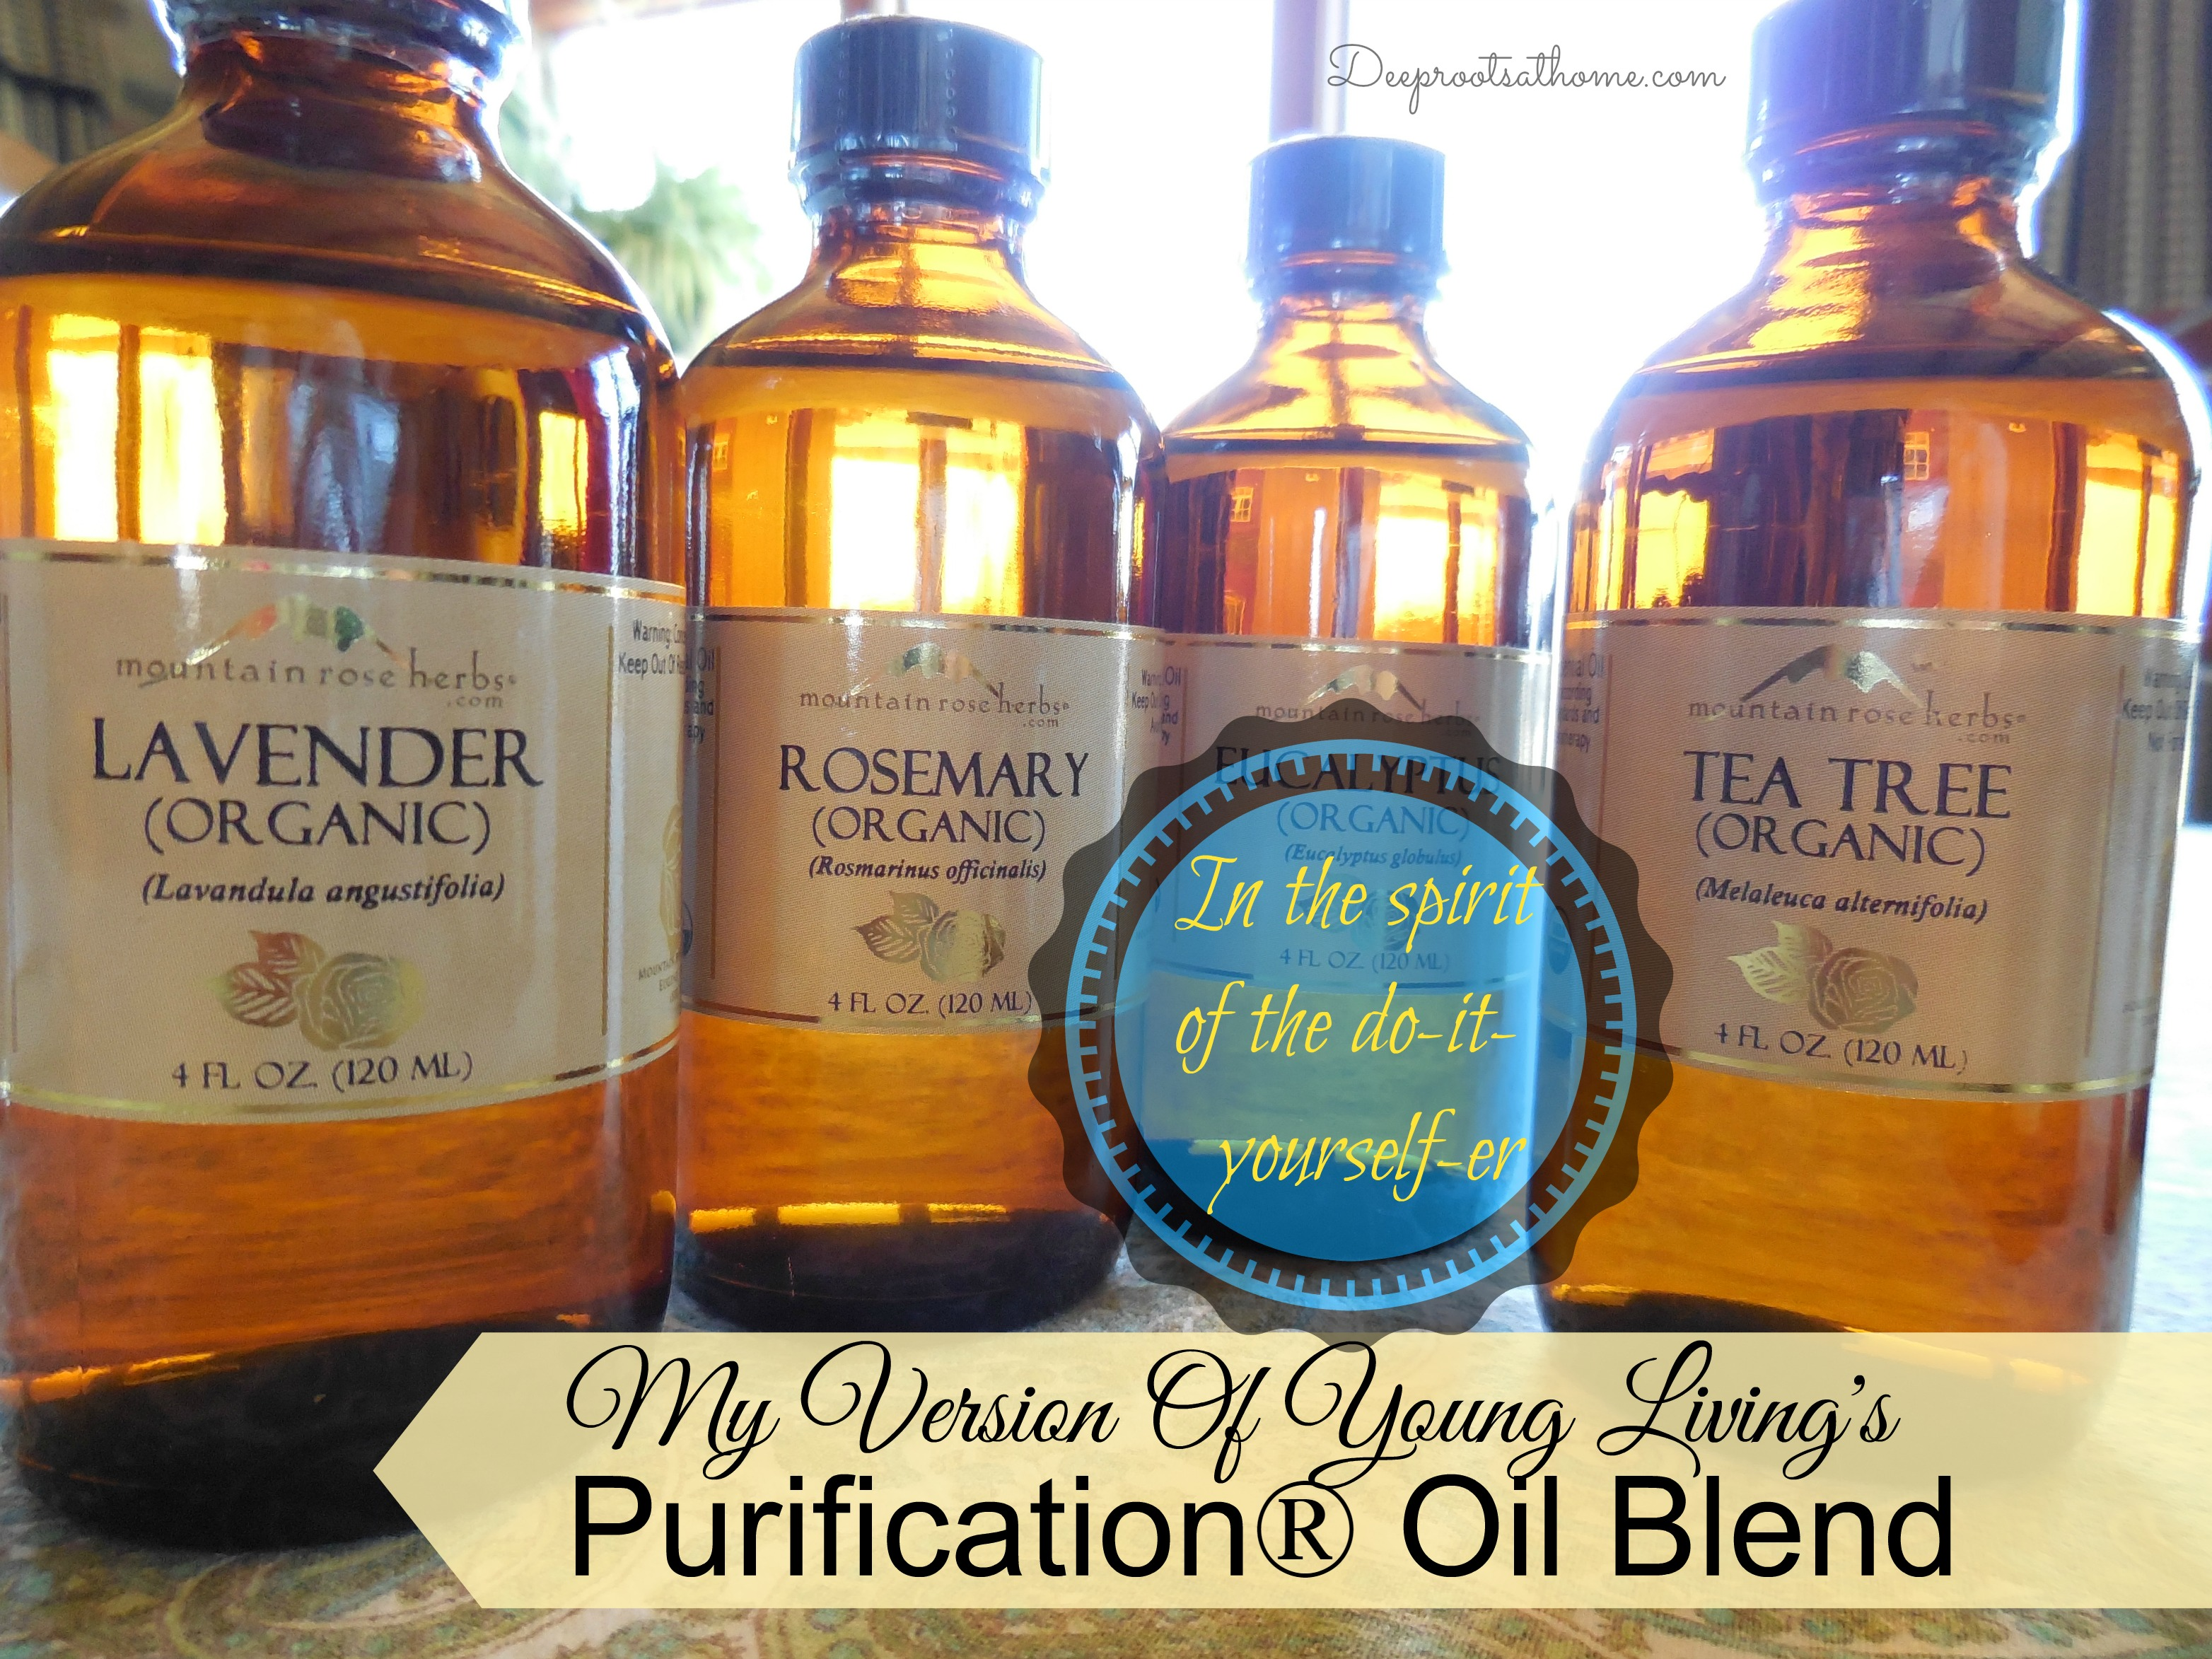 My Version Of Purification® Essential Oil Blend, Fresh and Clean, aromatherapy, drug resistance, Jean Valnet, DIY, M.D., pet odors, Mountain Rose Herbs, storing EOs, research, save money, sale, blends, citronella, lemon balm, and elemi, poor man's frankincense, anti-parasitic, fungicidal, preparedness minded, bird flu, epidemic, colds and flu season, sickroom, spray cleaner, carrier oil, deodorant, insecticide, deters pests, recipe, nebulizer, topical, analgesic, antibacterial, anti-inflammatory, antimicrobial, antiseptic, antispasmodic, aromatic, deodorant, diuretic, insecticide, sedative, stimulant, eucalyptus, healthy living, natural medicine chest, tea tree, lemon, lemongrass, lavender, rosemary, TheraPro premium diffuser, disinfectant spray, homemade cleaners, Thieve's, antiviral, antifungal,